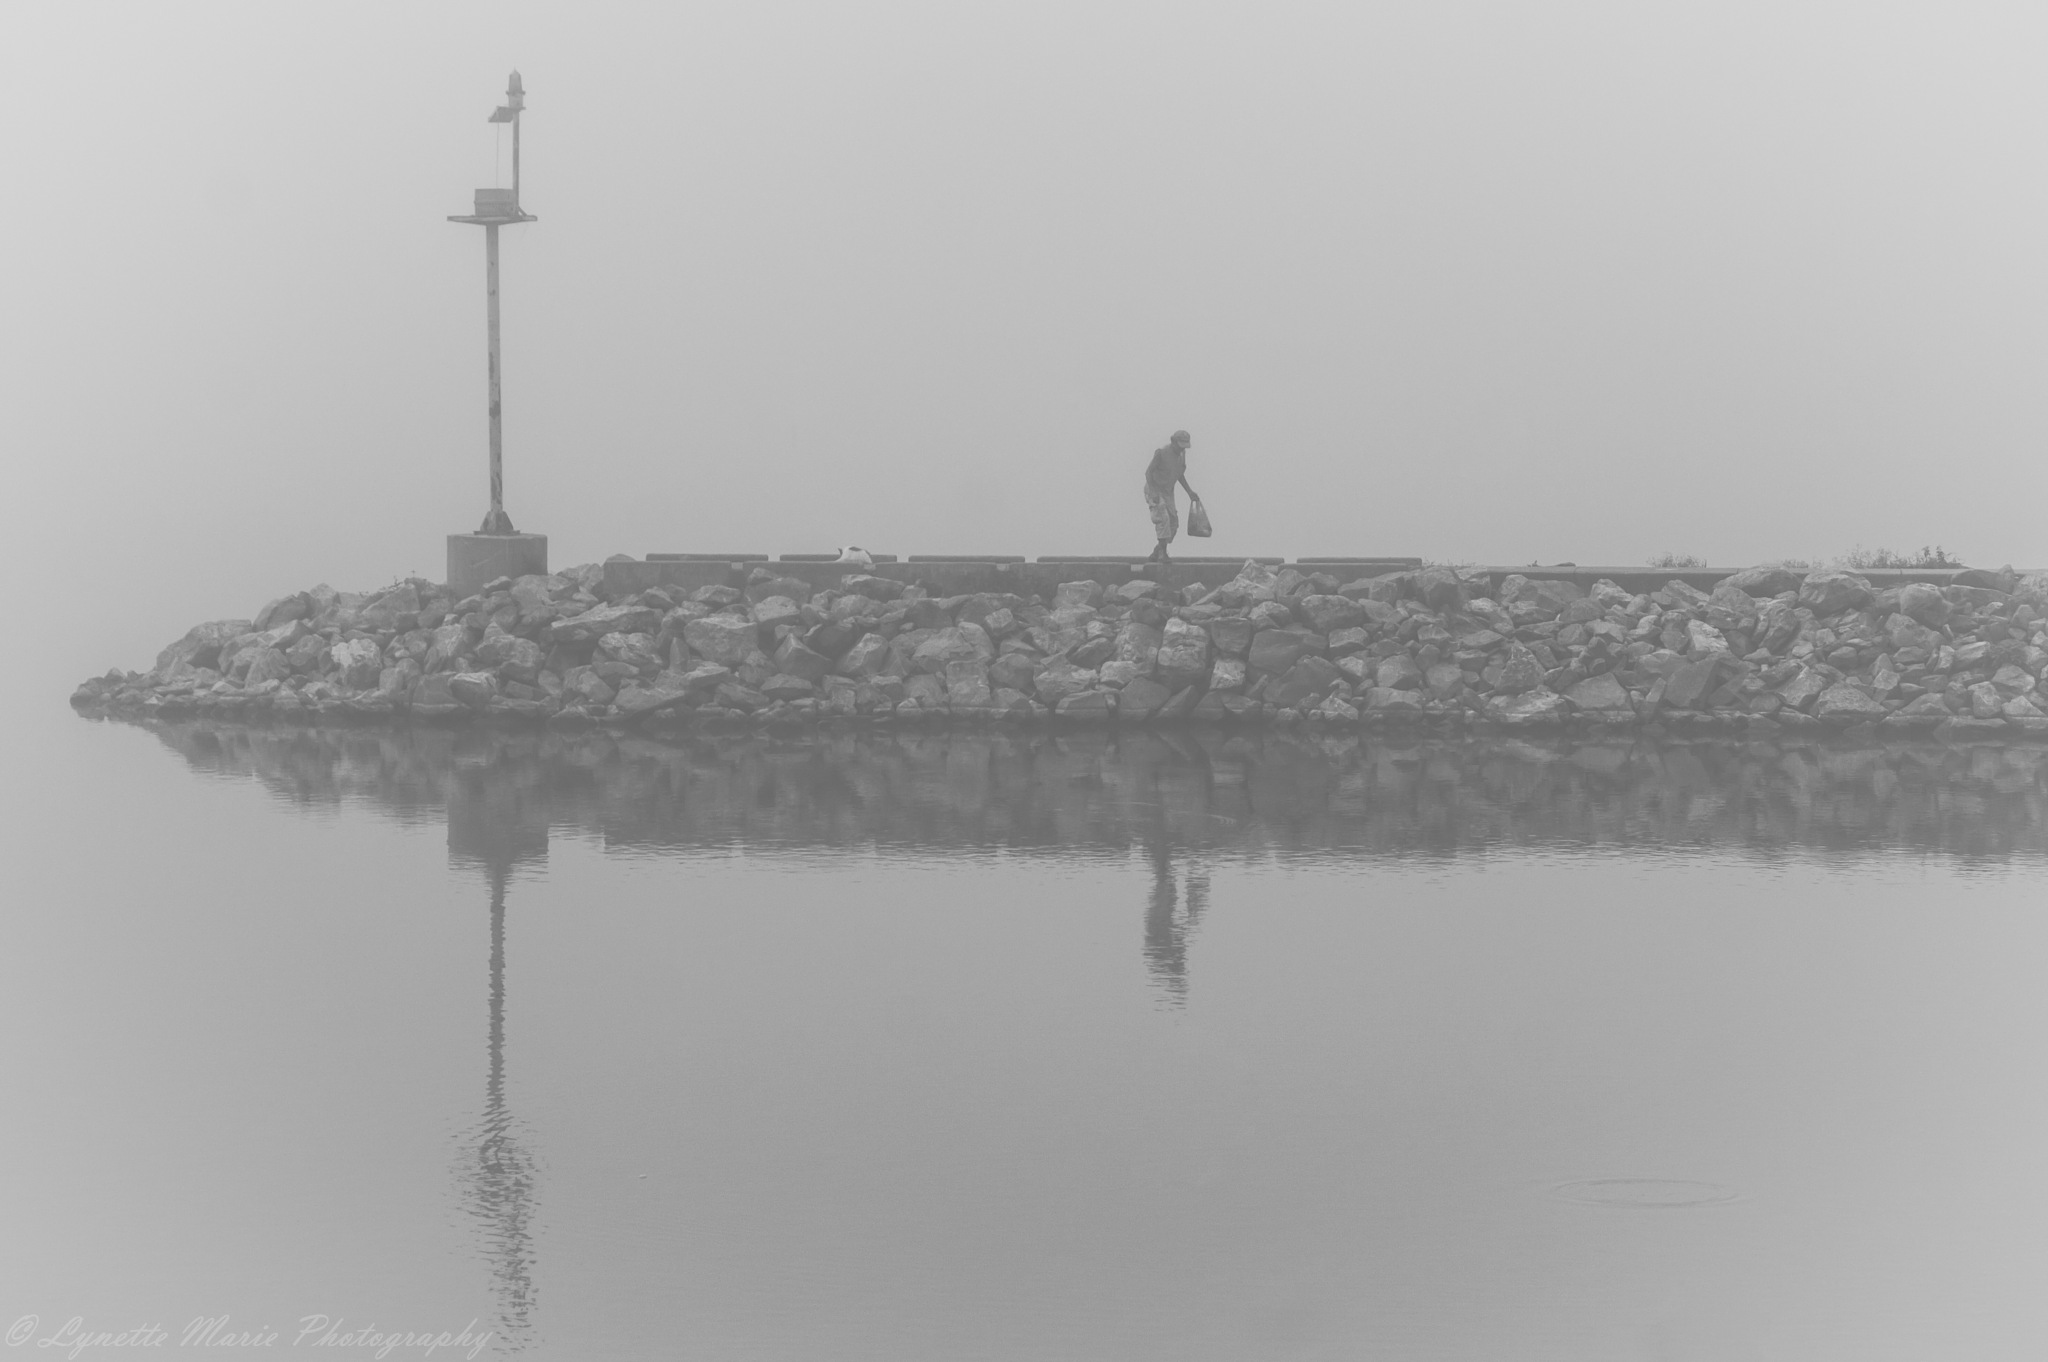 Man Searches in the Fog by Lynette M. Feliciano-Justice